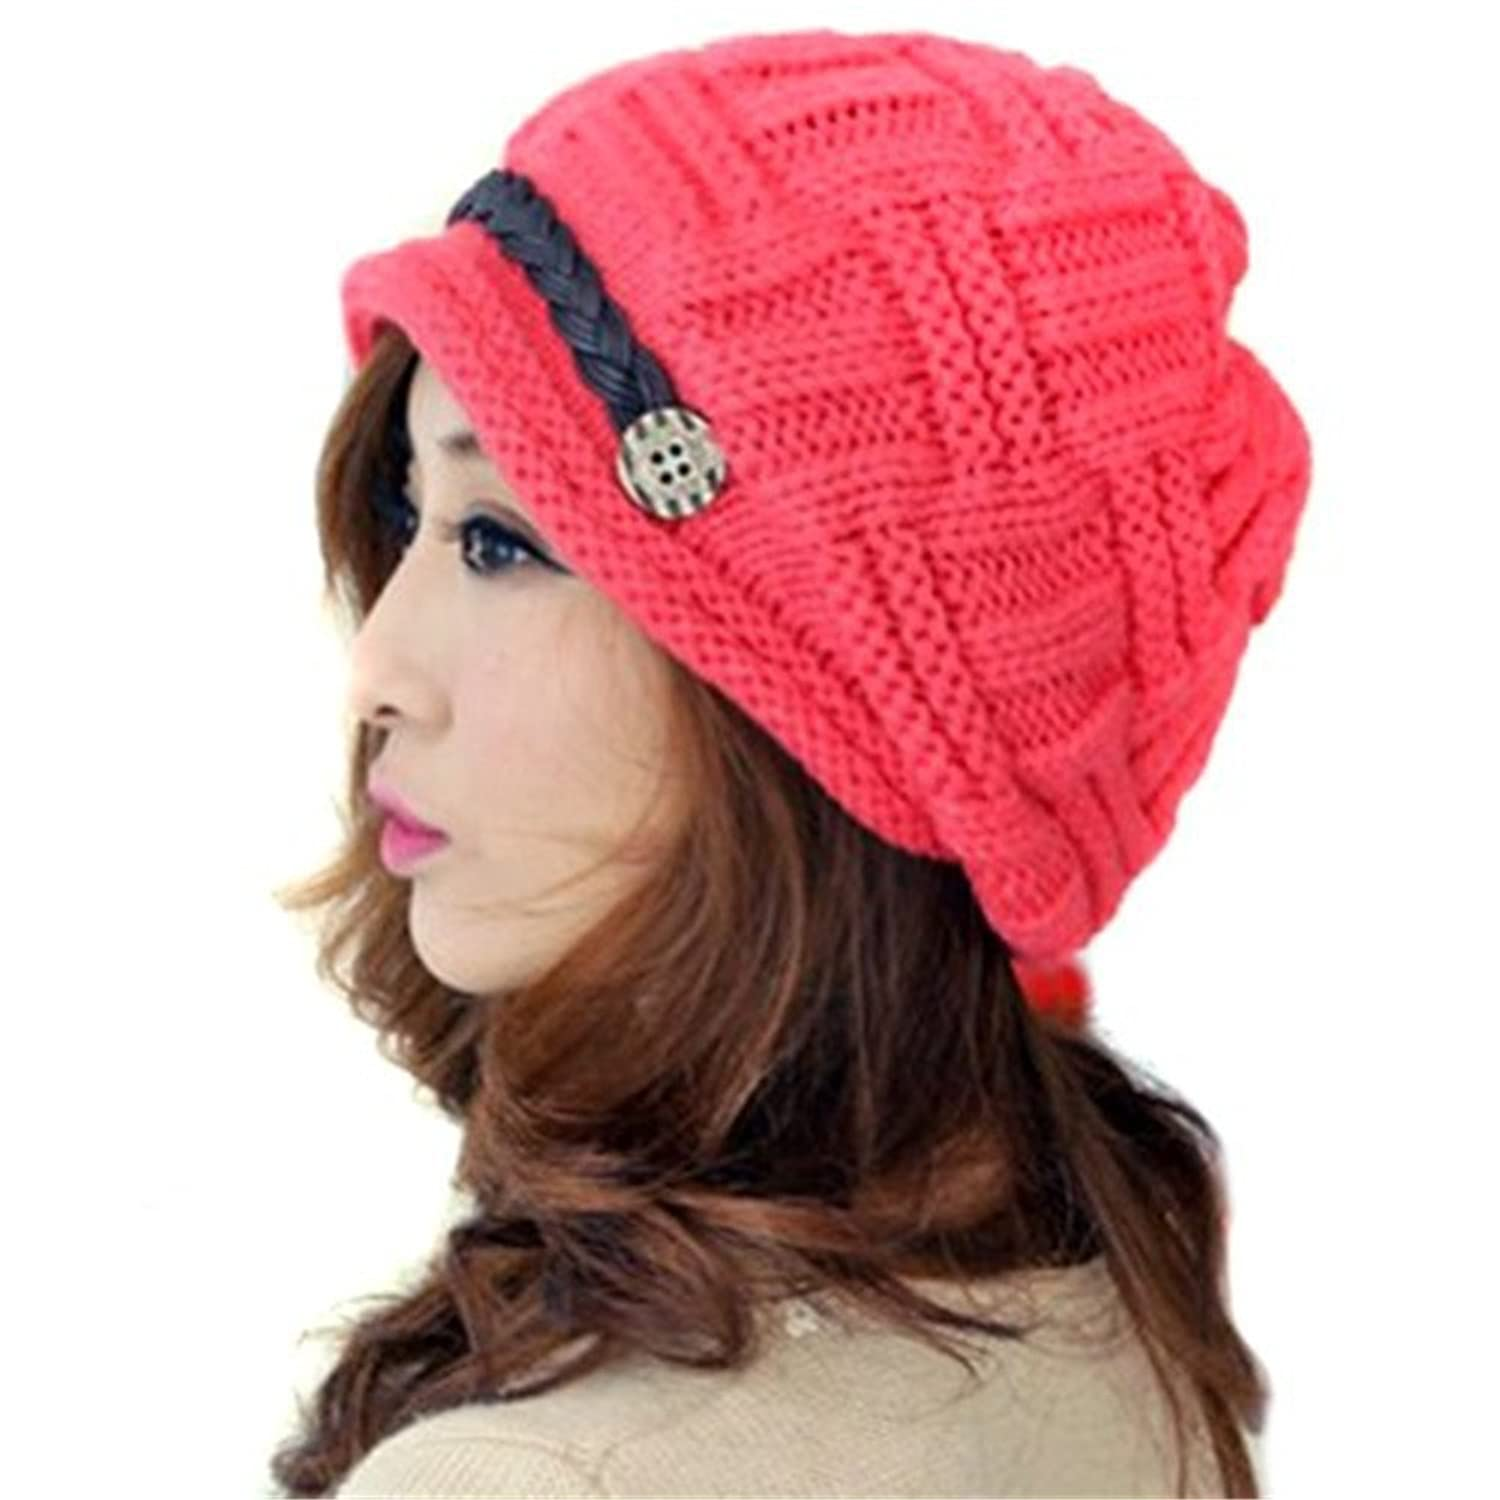 Haodasi Crochet Hat Fashion Mode Women's Winter Warm Knit Beanie Strickmutze Knit Hat Wool Snow Ski Caps